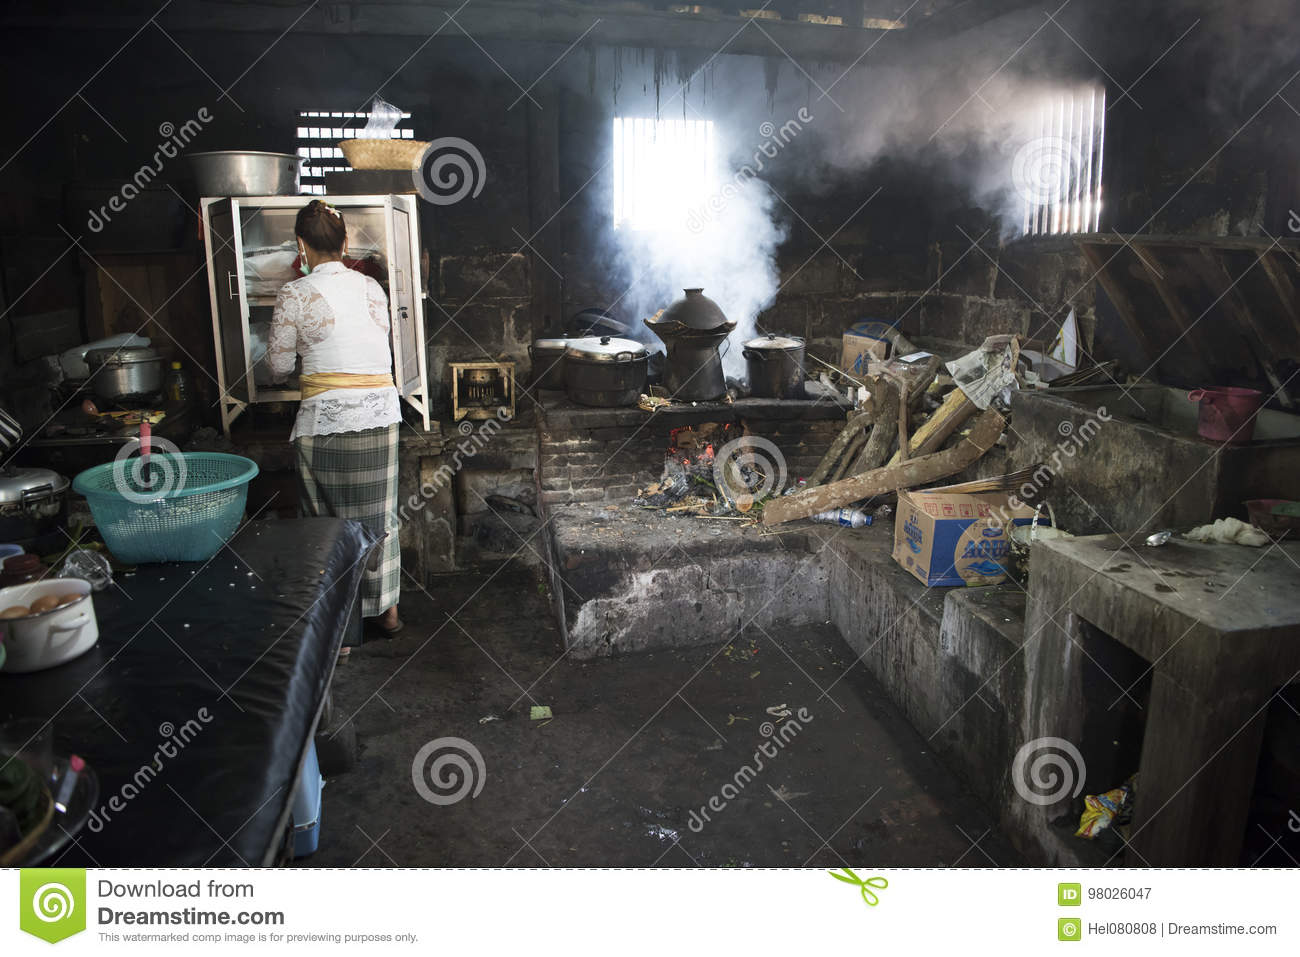 Balinese woman cooking in traditional kitchen